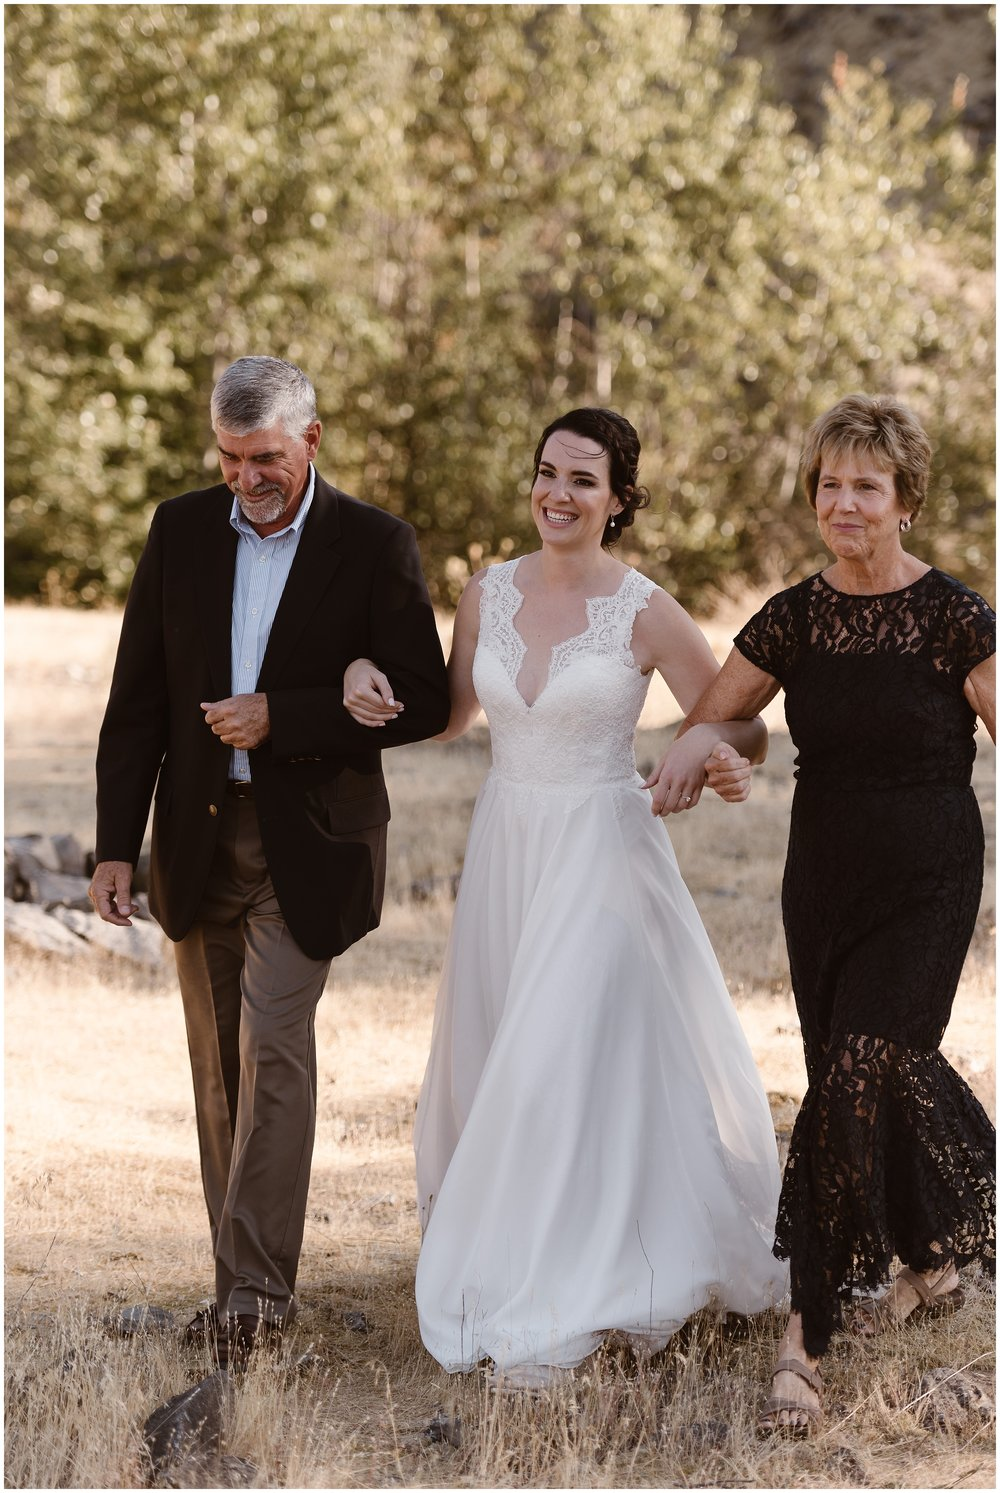 Lauryn's mom and dad hold her hands on either side and walk her toward her elopement ceremony. With her dad on her right and her mom on her left, they stride toward where David is waiting for them.